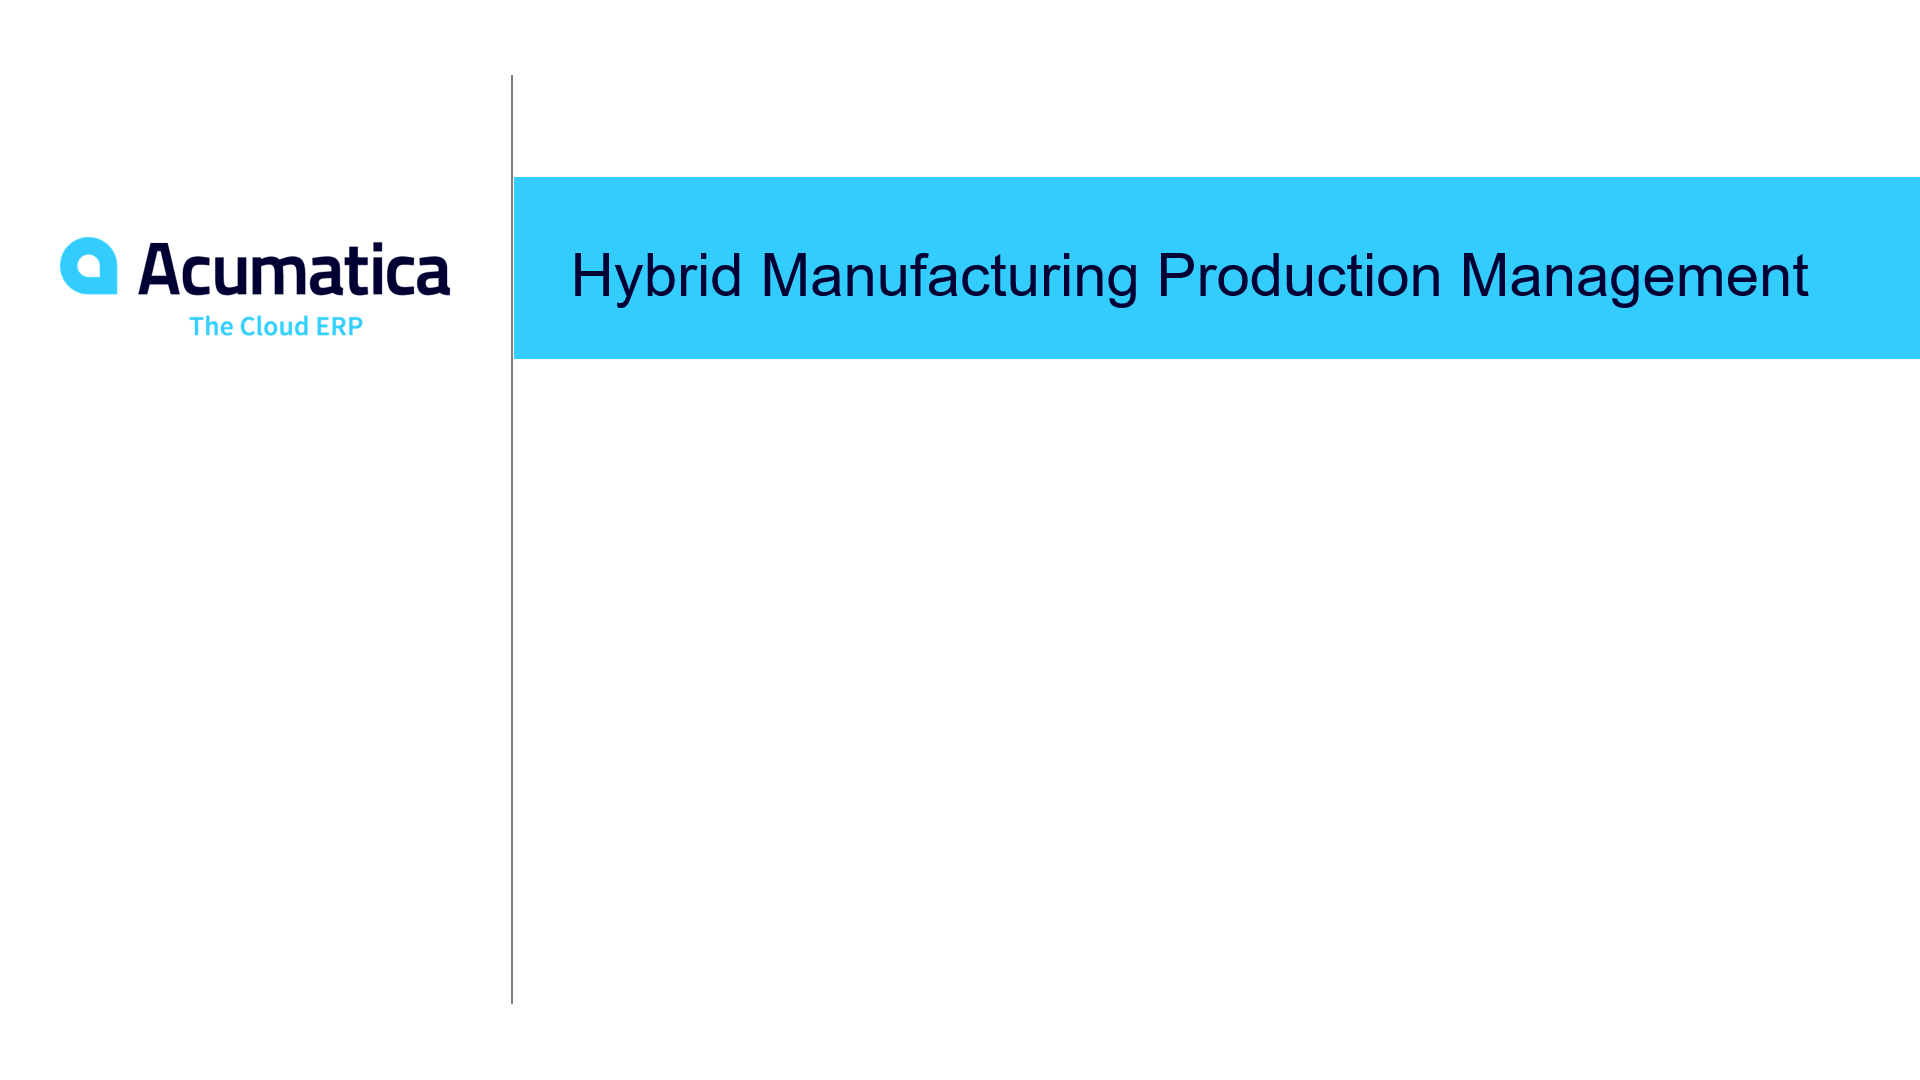 Hybrid Manufacturing Production Management